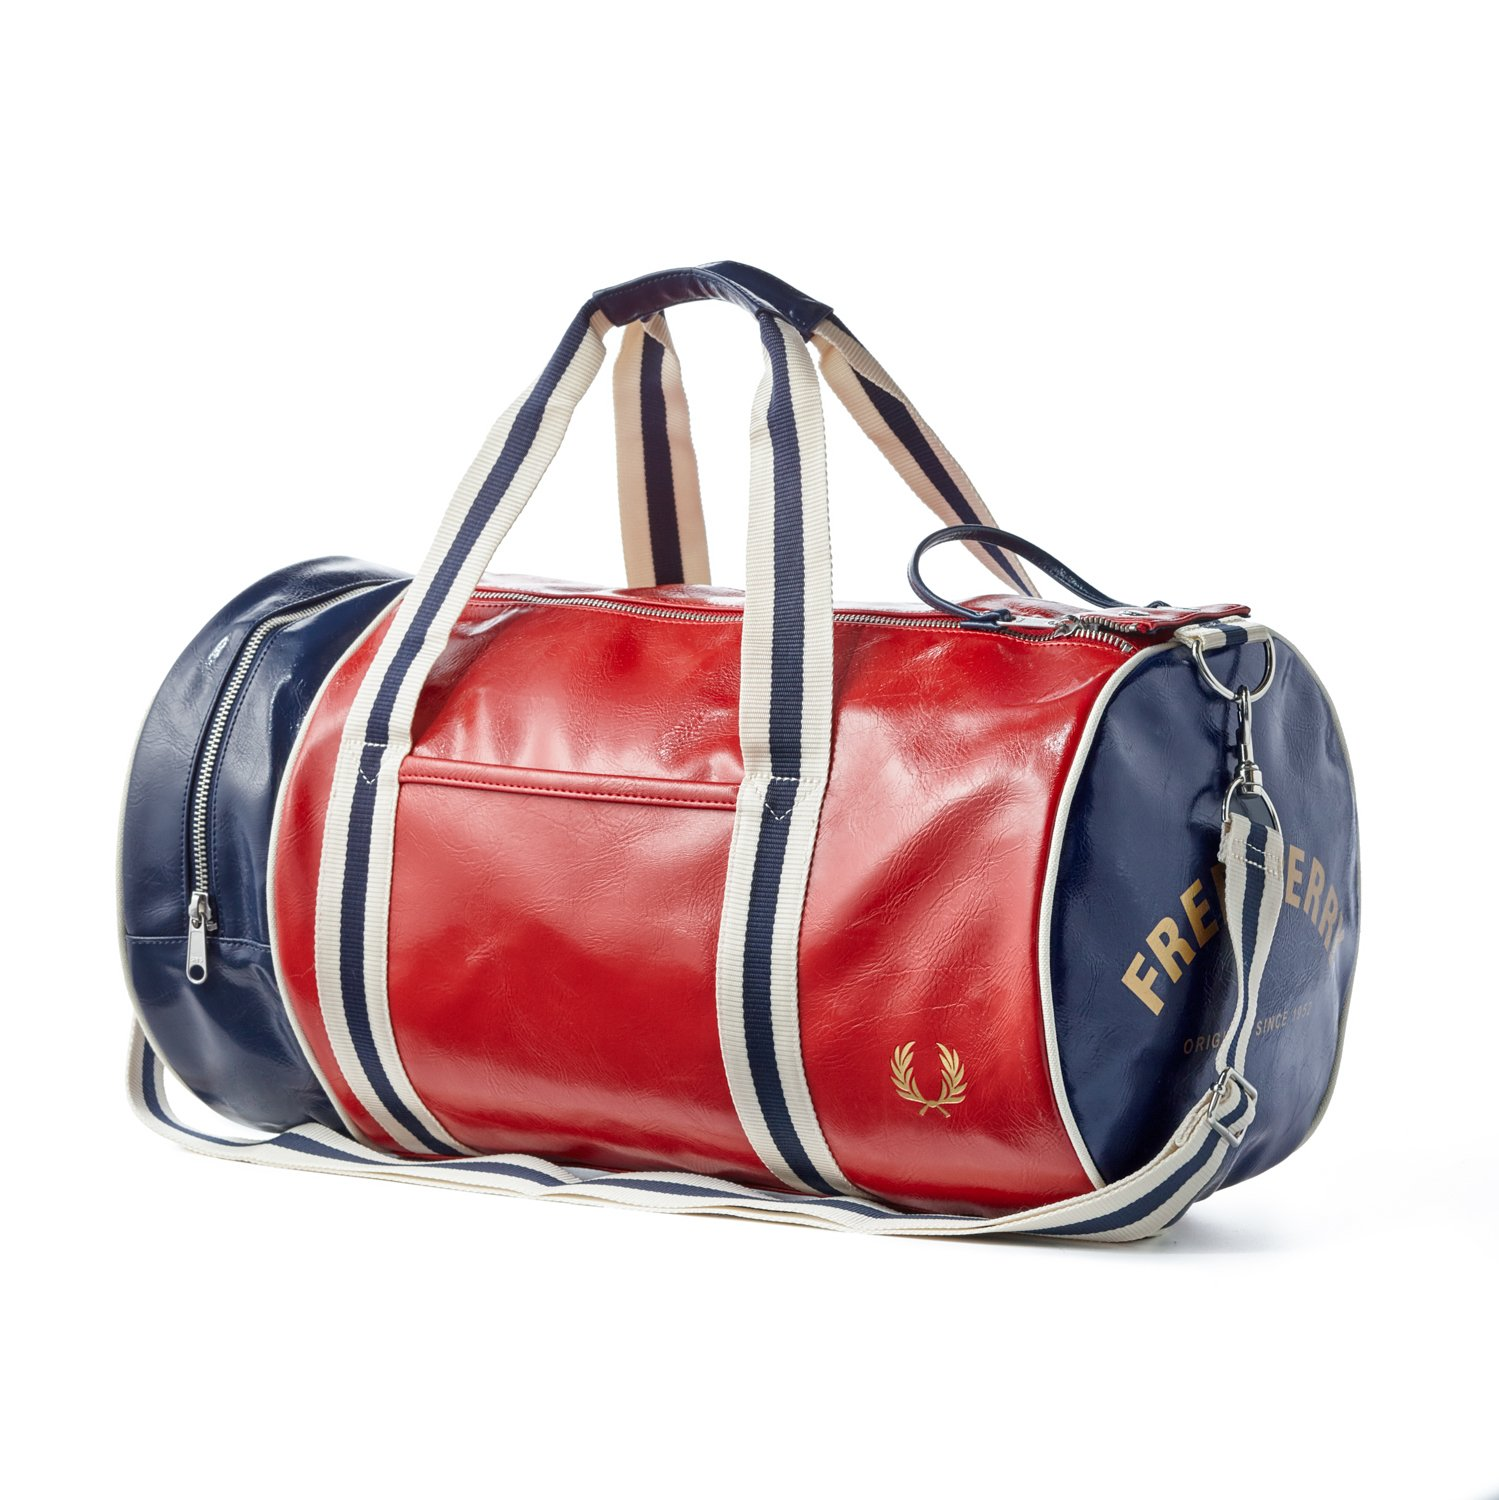 Fred Perry Classic Barrel Bag, Tartan Red, Navy and Ecru